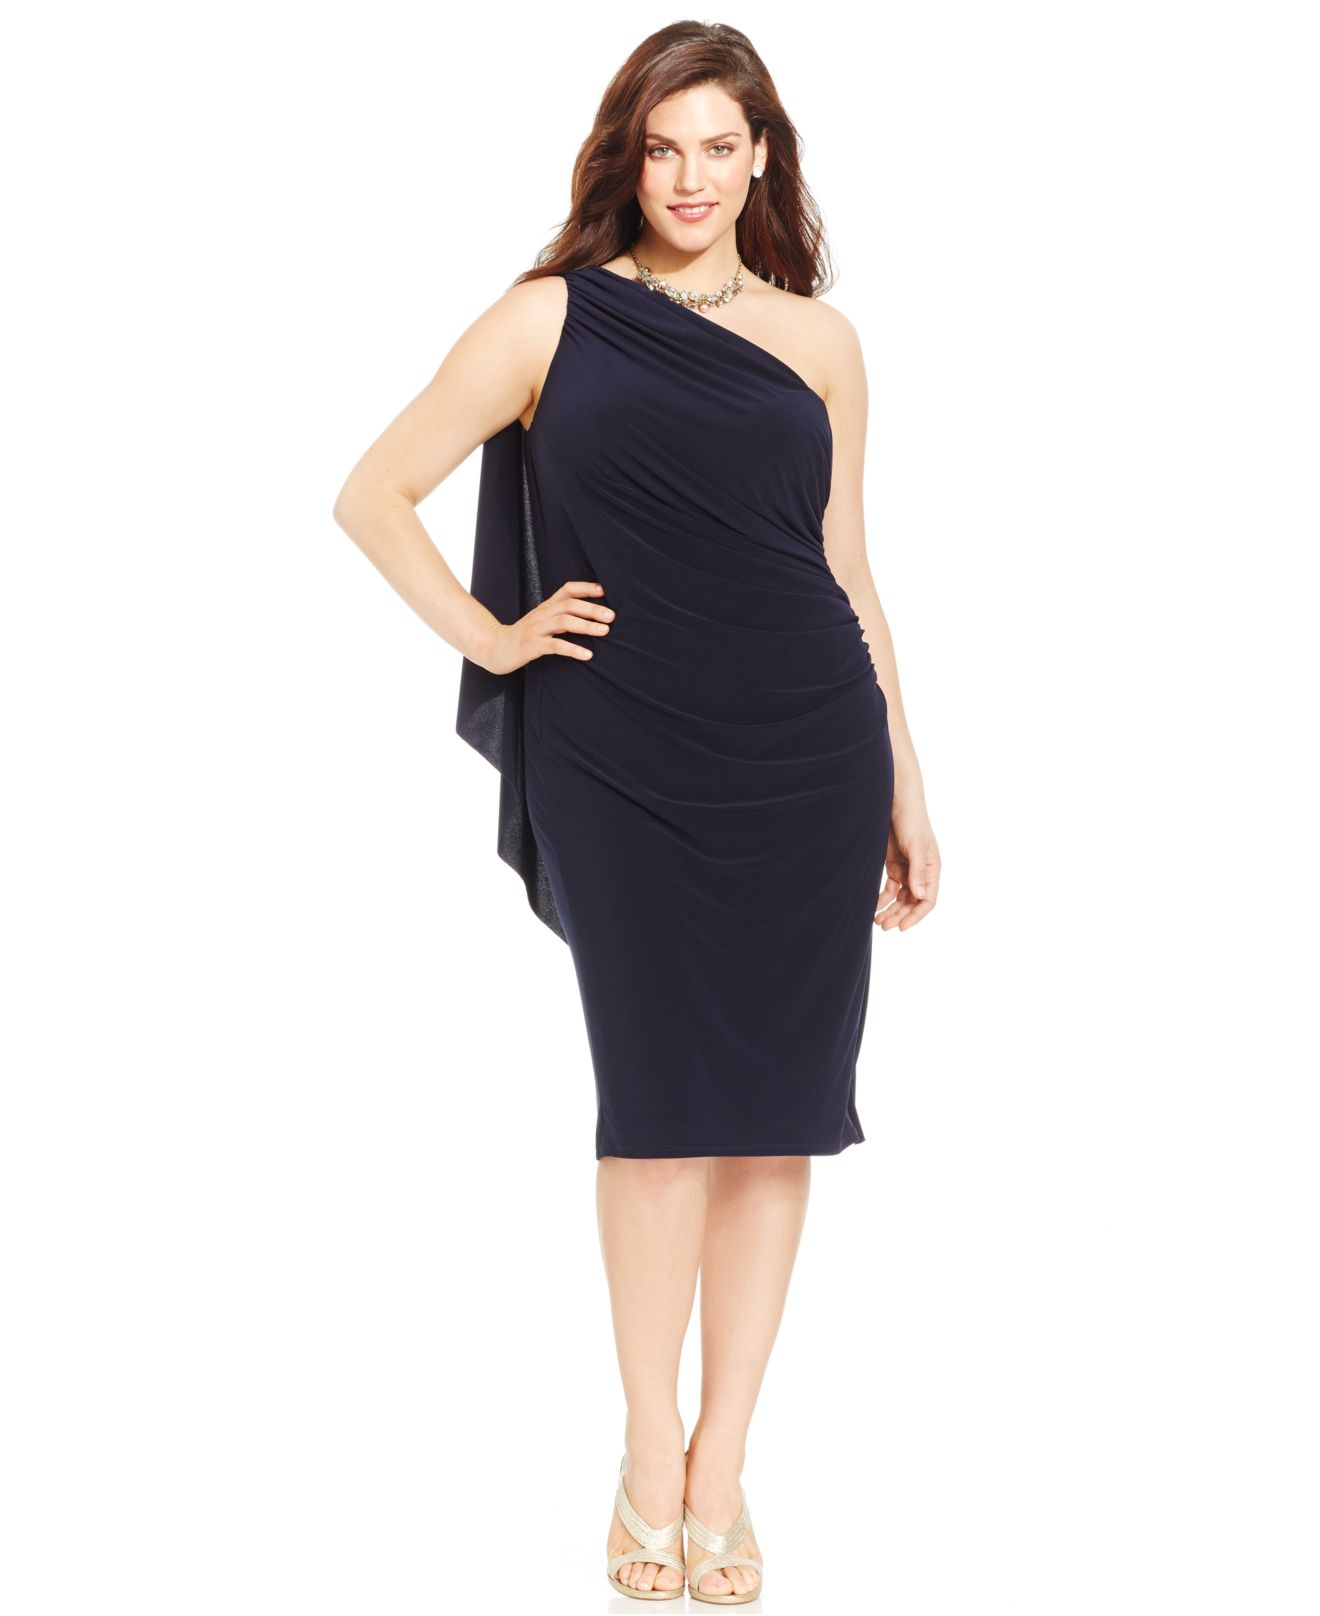 Lyst - Betsy & adam Plus Size One-shoulder Ruched Dress in Blue